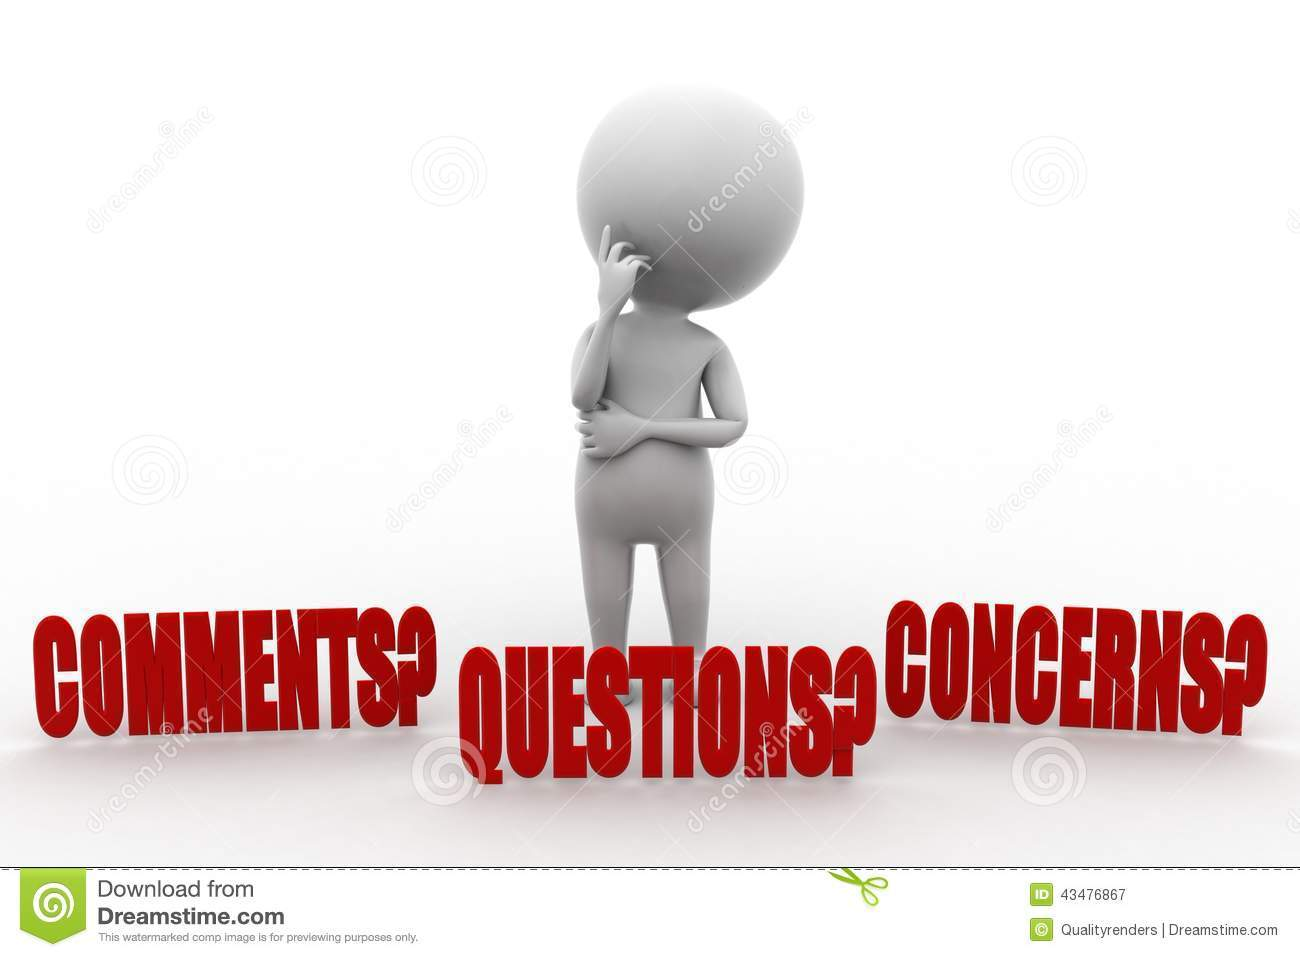 Questions comments concerns clipart picture stock Questions comments concerns clipart » Clipart Portal picture stock